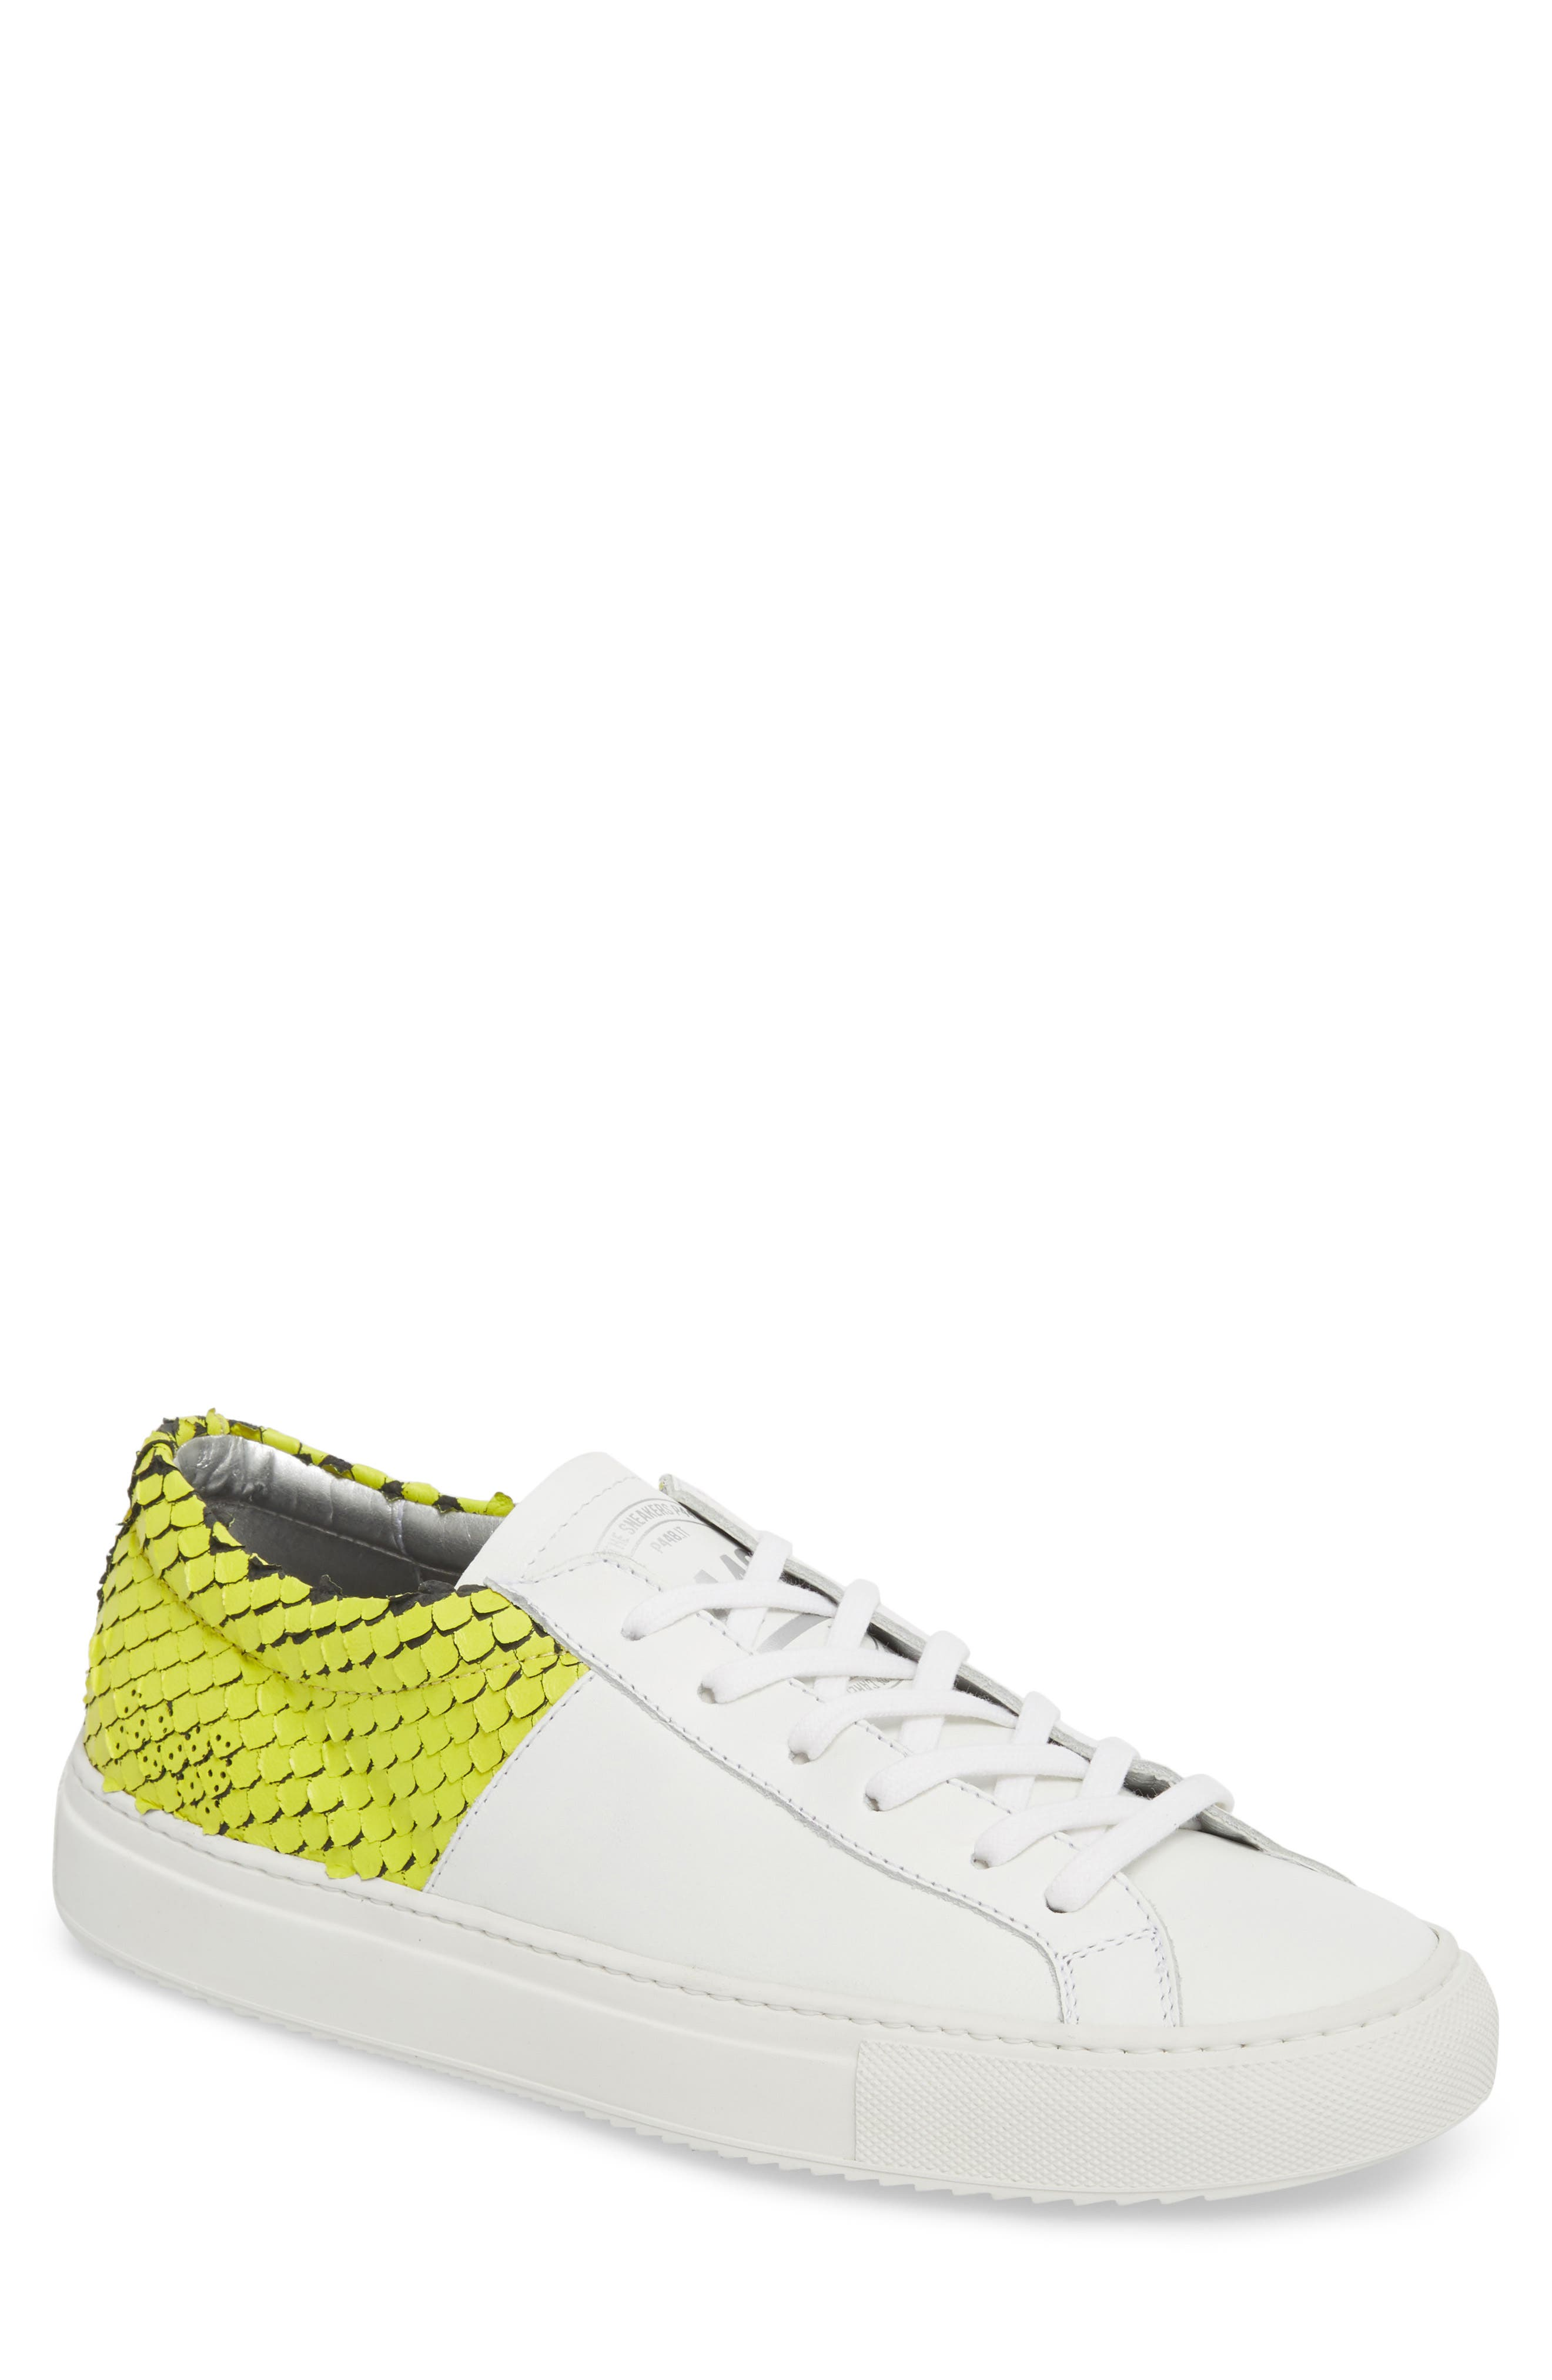 Onec Textured Low Top Sneaker,                         Main,                         color, Python White